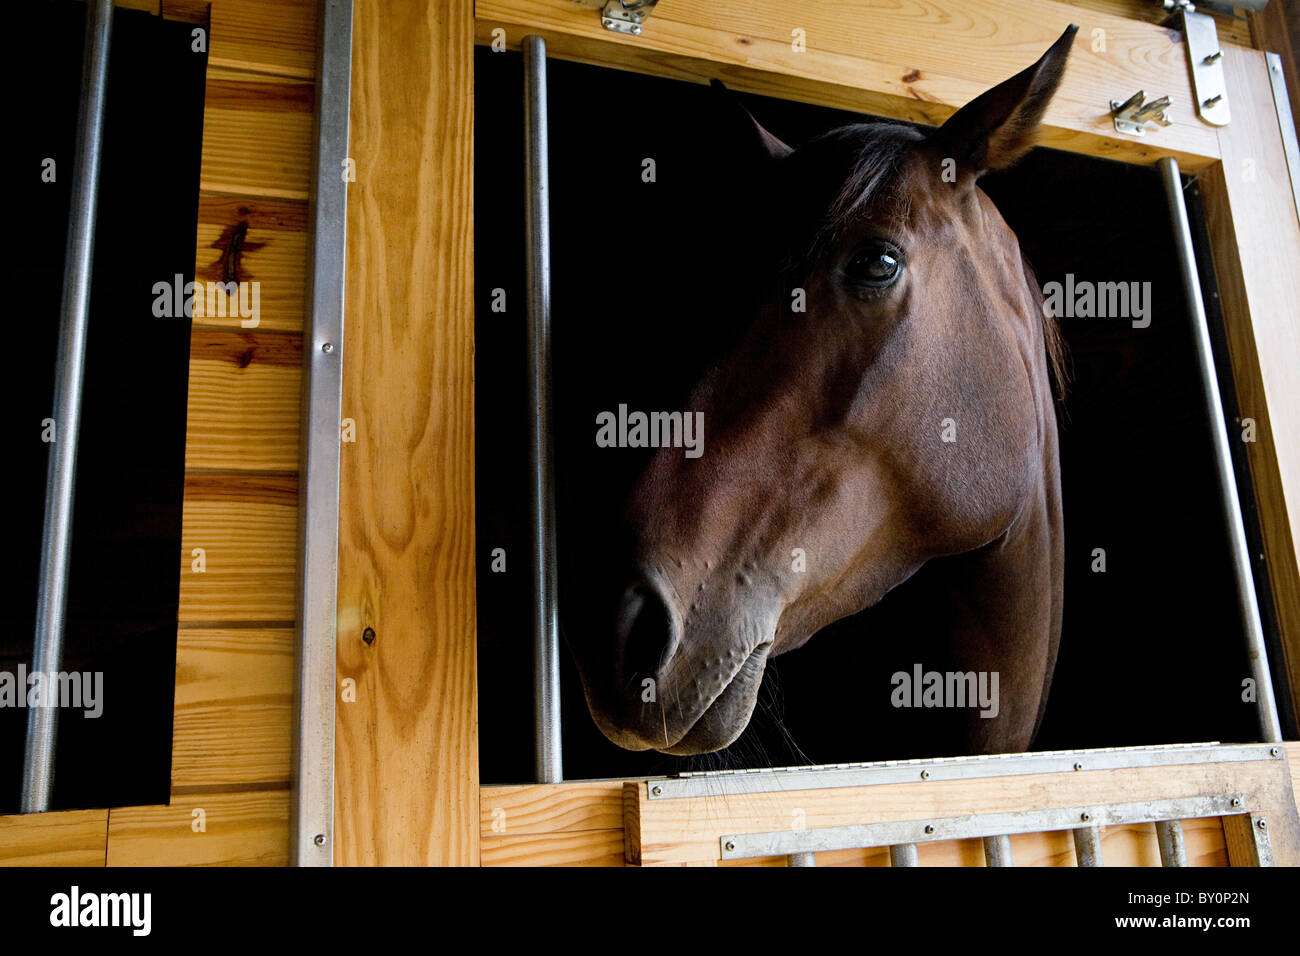 Horse's head and stable - Stock Image